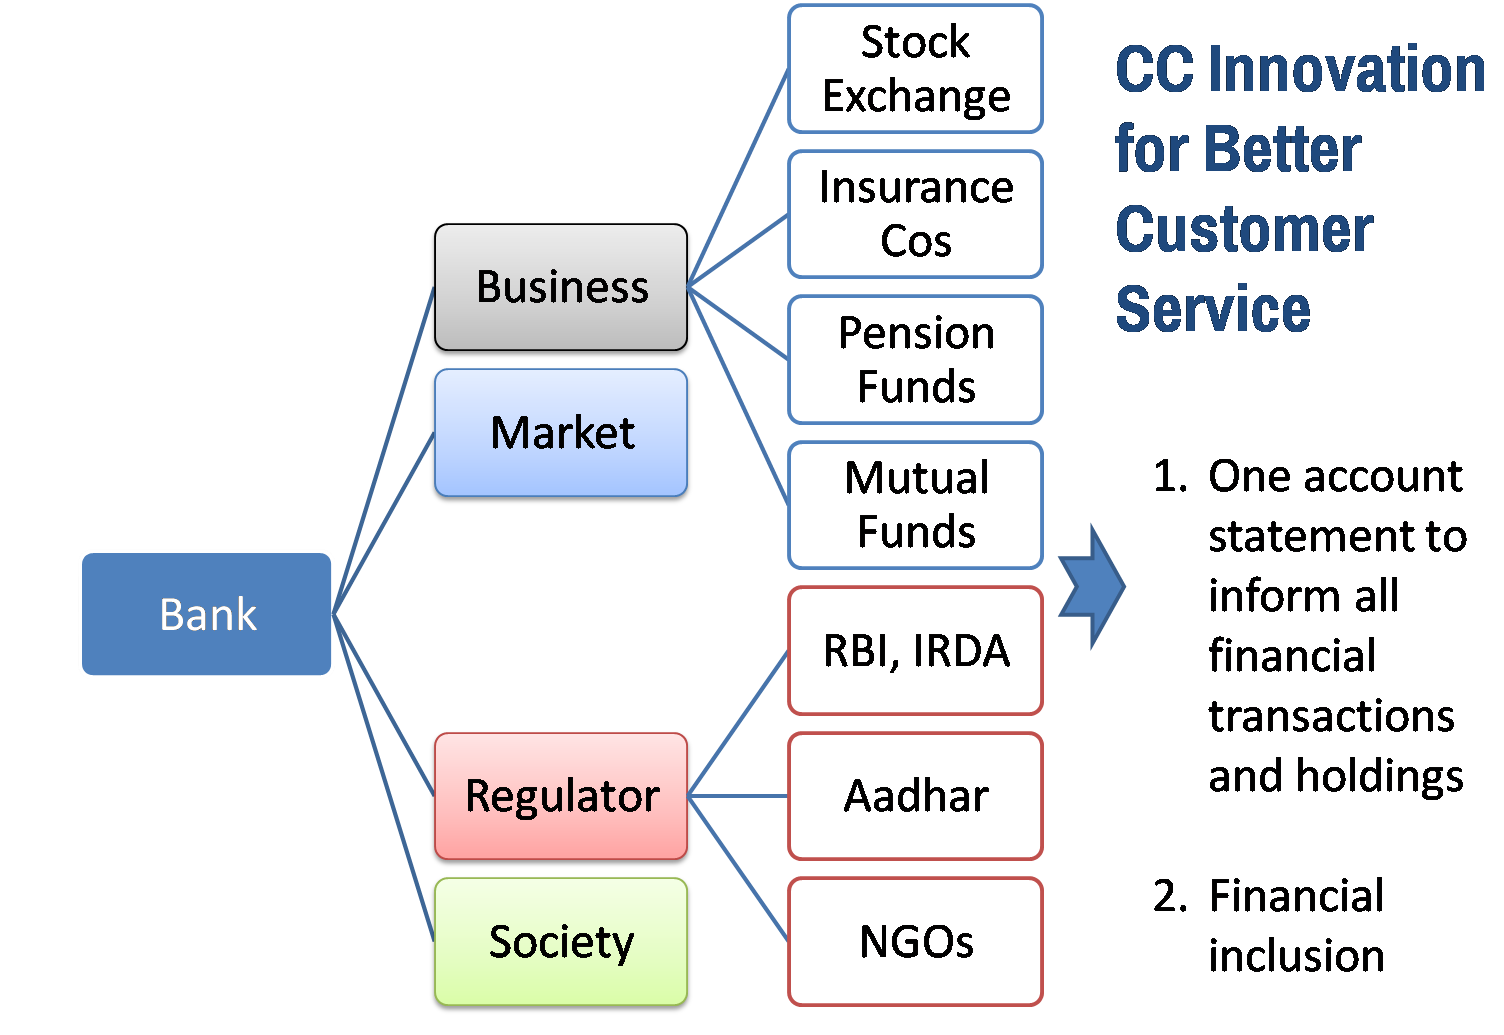 financial services provided by indian banks Amendments to master direction- reserve bank of india (financial services provided by banks) directions, 2016 considering the suggestions and queries received from sebi, banks and other.